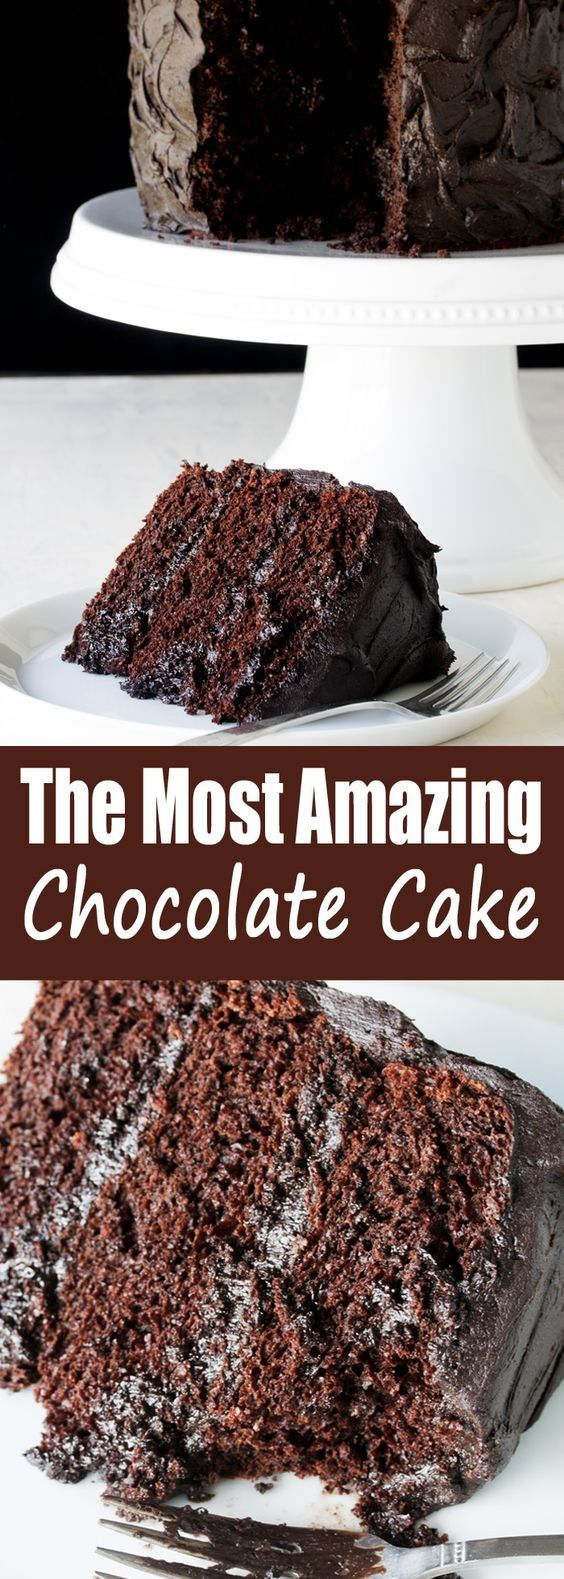 The Most Amazing Chocolate Cake is here. I call this my Matilda Cake because I swear it's just as good as the cake that Bruce Bogtrotter ate in Matilda. Moist chocolaty perfection. This is the chocolate cake you've been dreaming of! #cakerecipe #sweetstuff